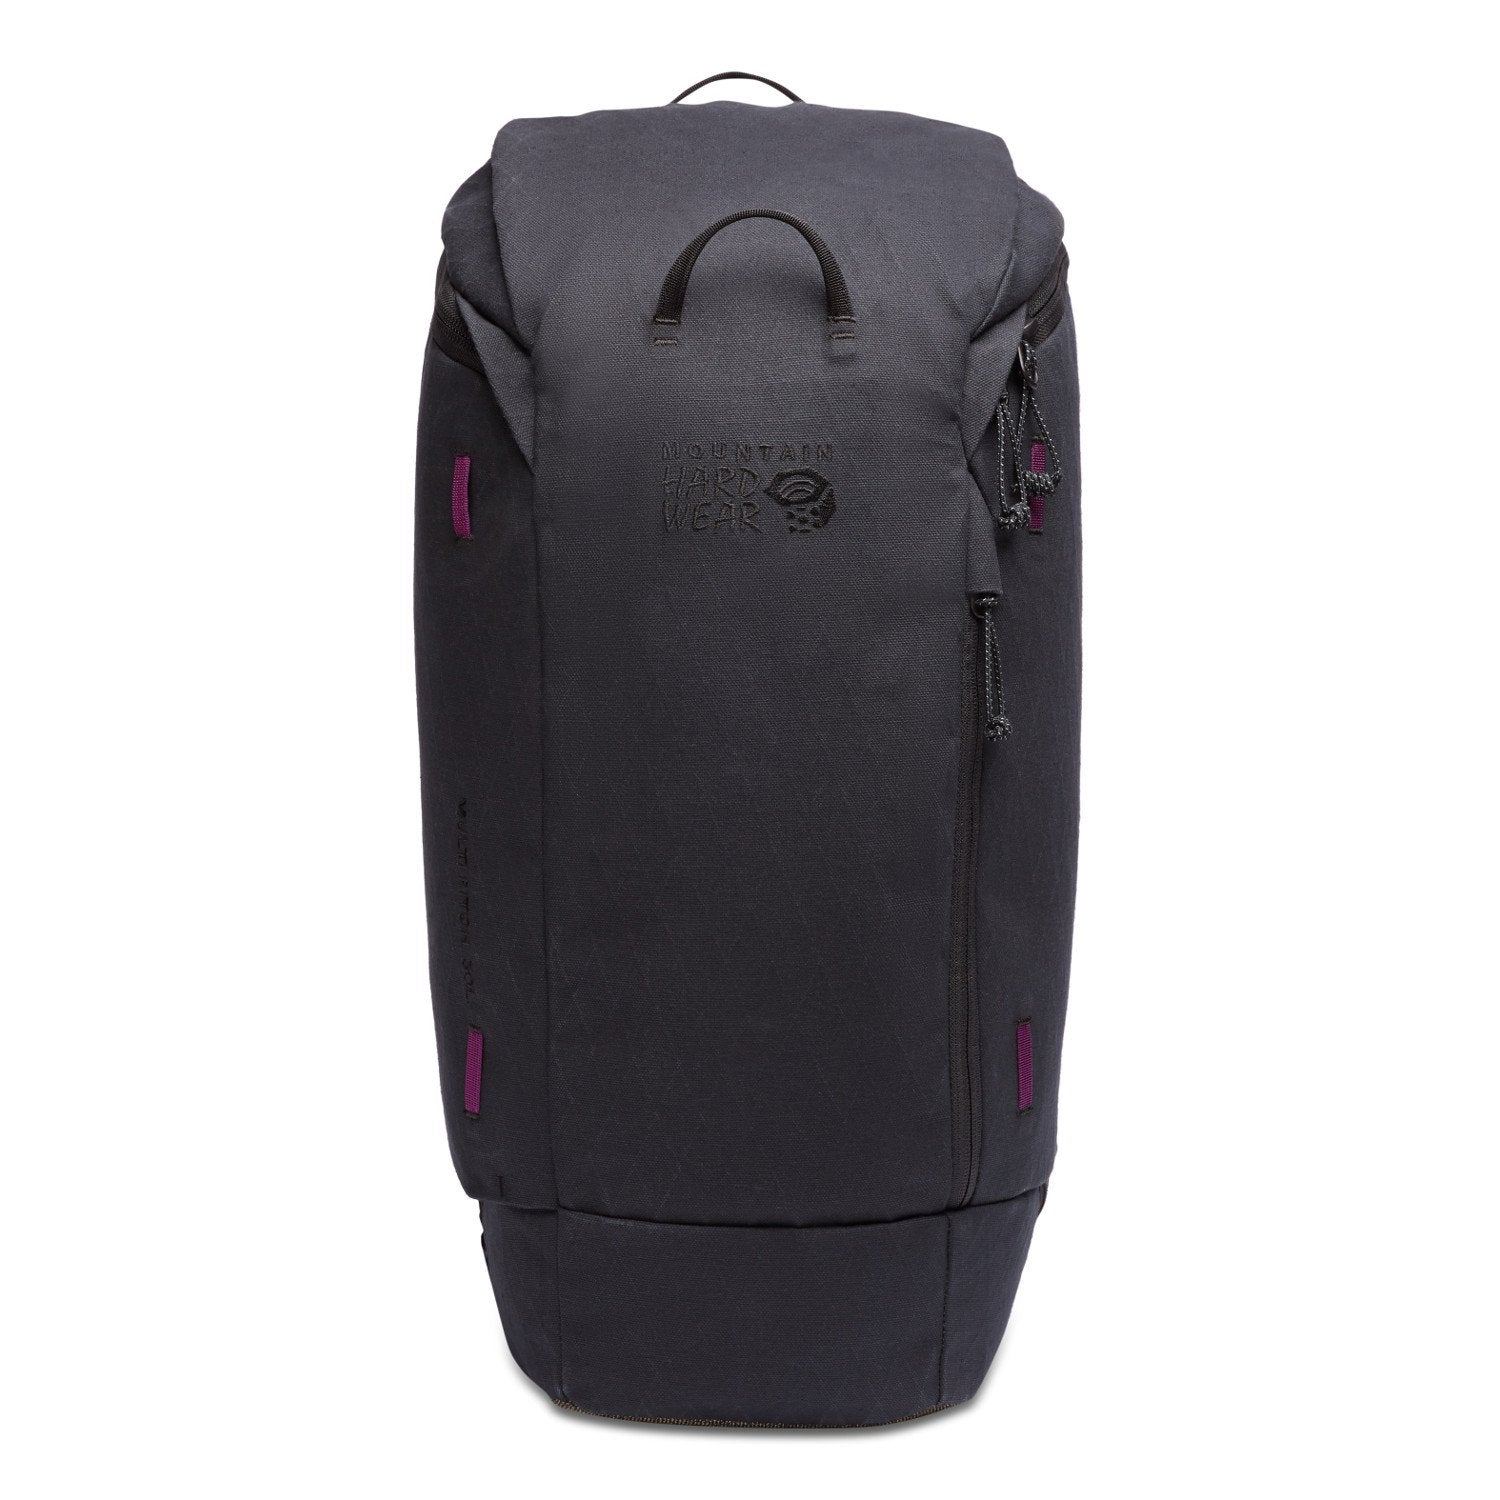 Mountain Hardwear Multi-Pitch 30 rucksack, front view in black colour